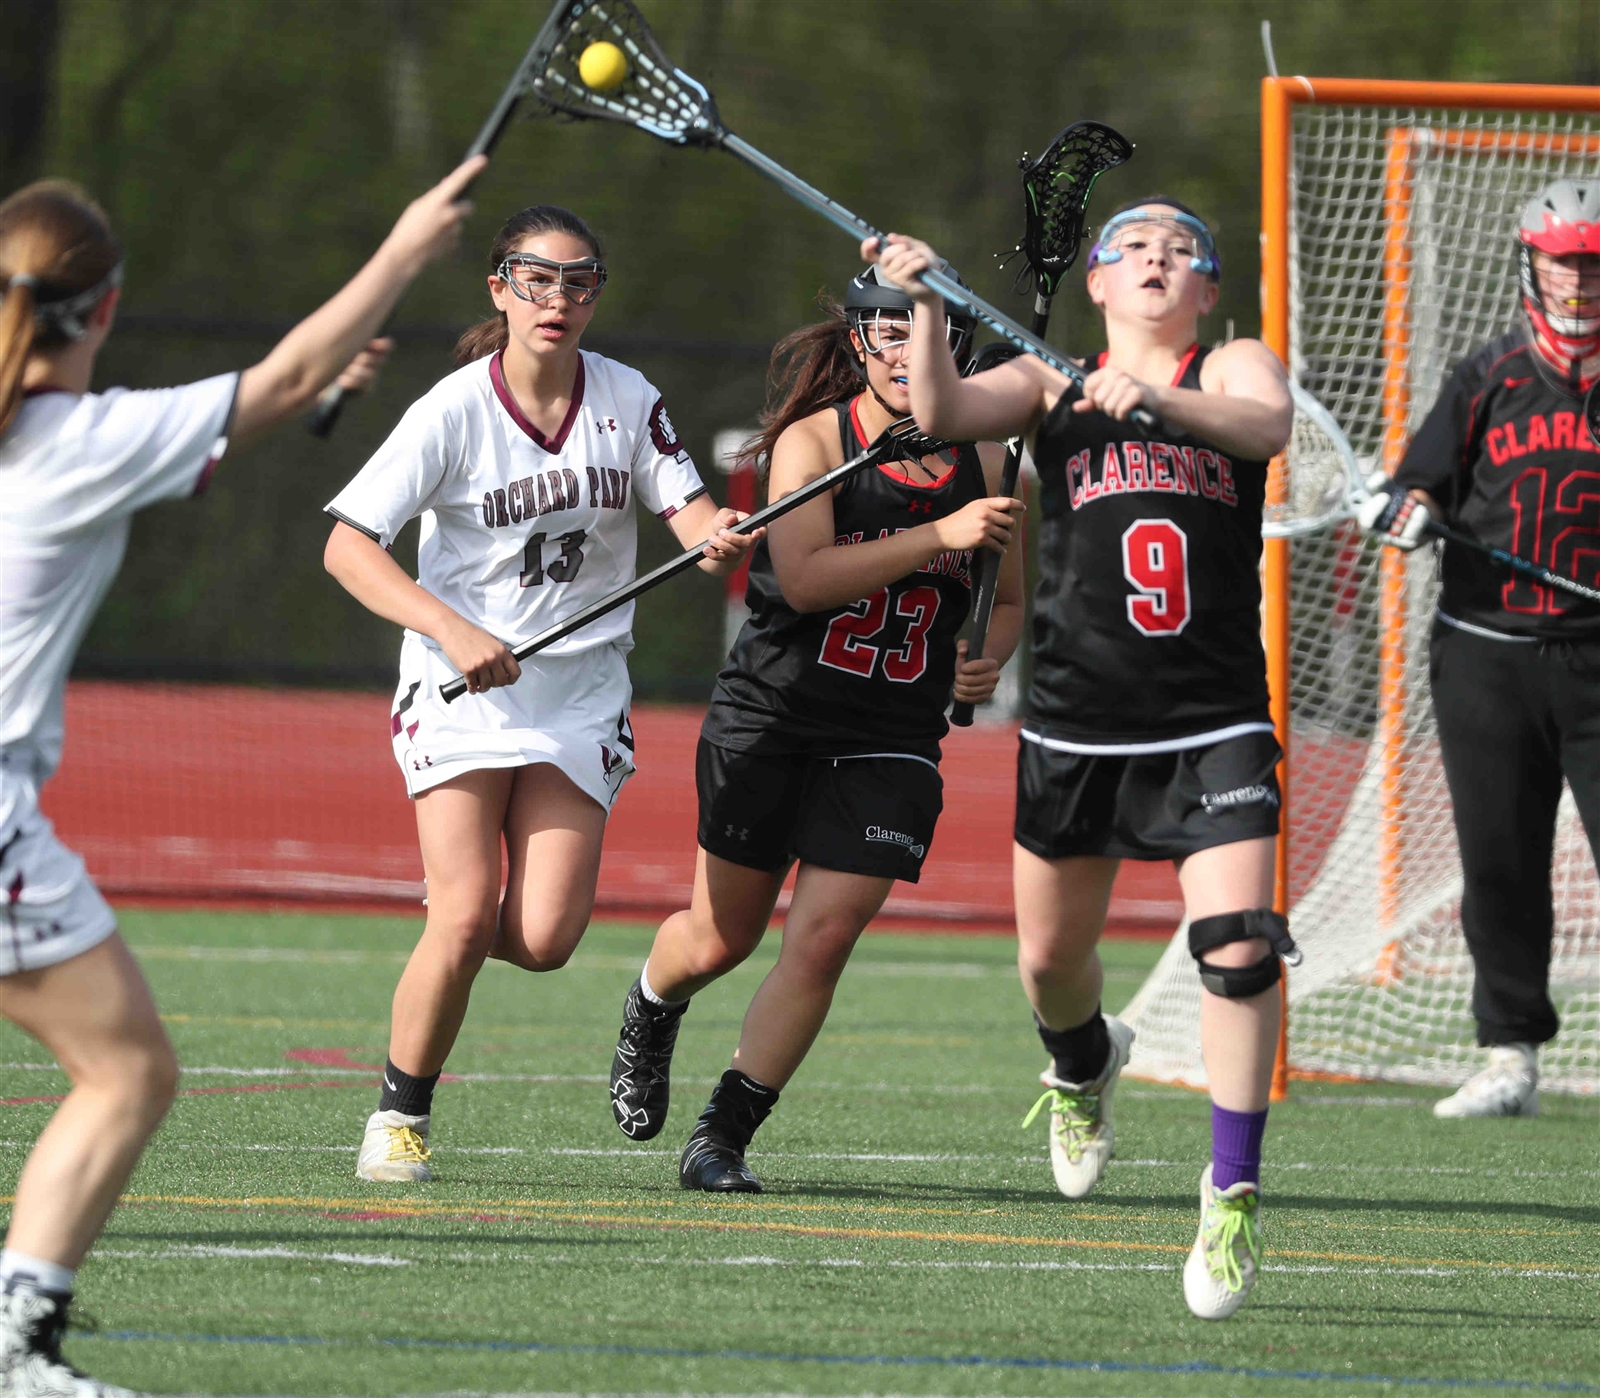 Madison Leeper of Clarence passes the ball past Jessica Peters of Orchard Park up the field.